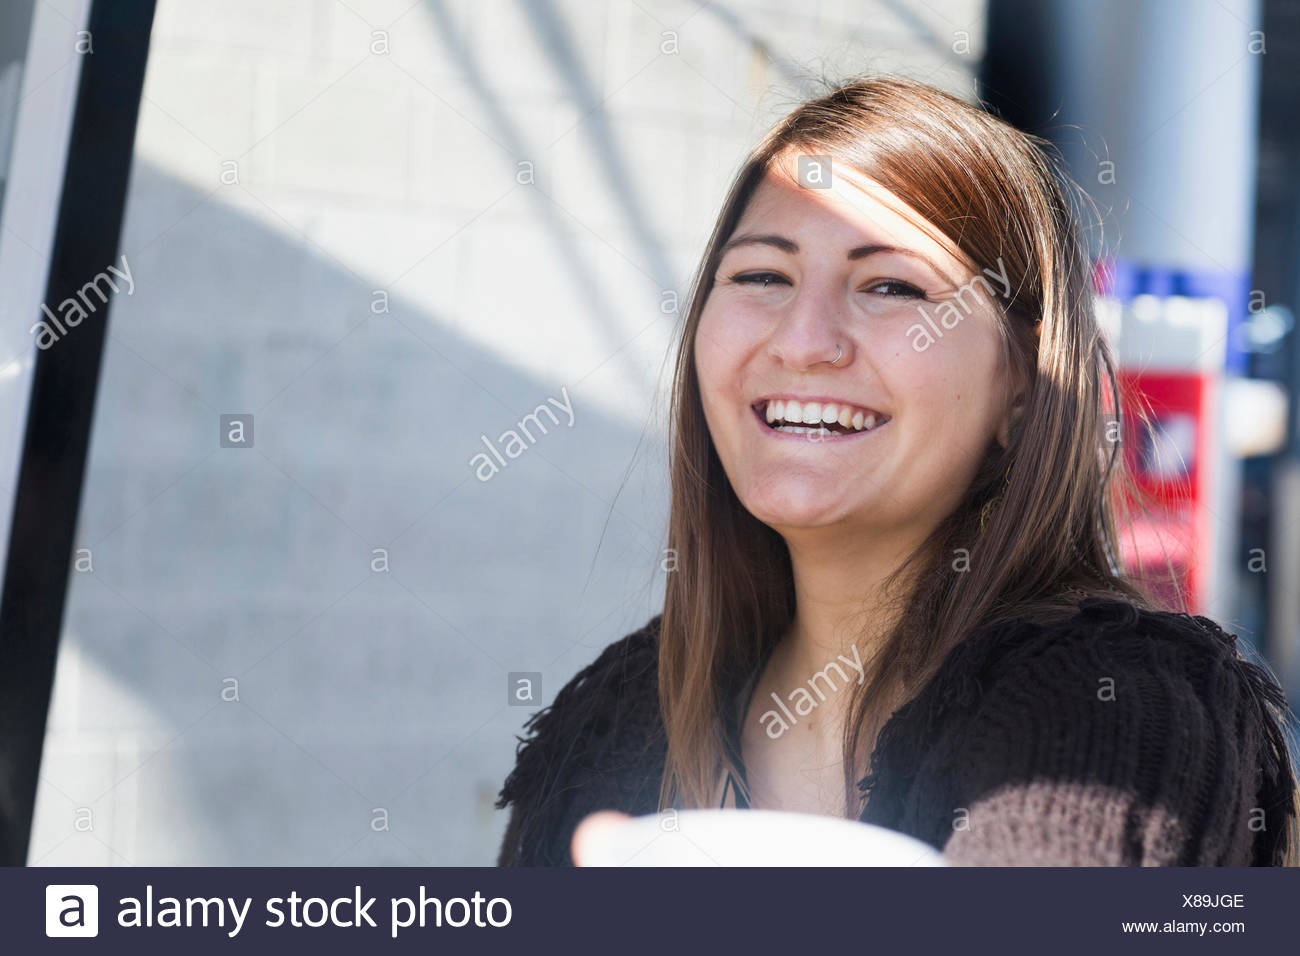 Portrait of a young woman smiling, Freiburg im Breisgau, Bade-Wurtemberg, Allemagne Photo Stock